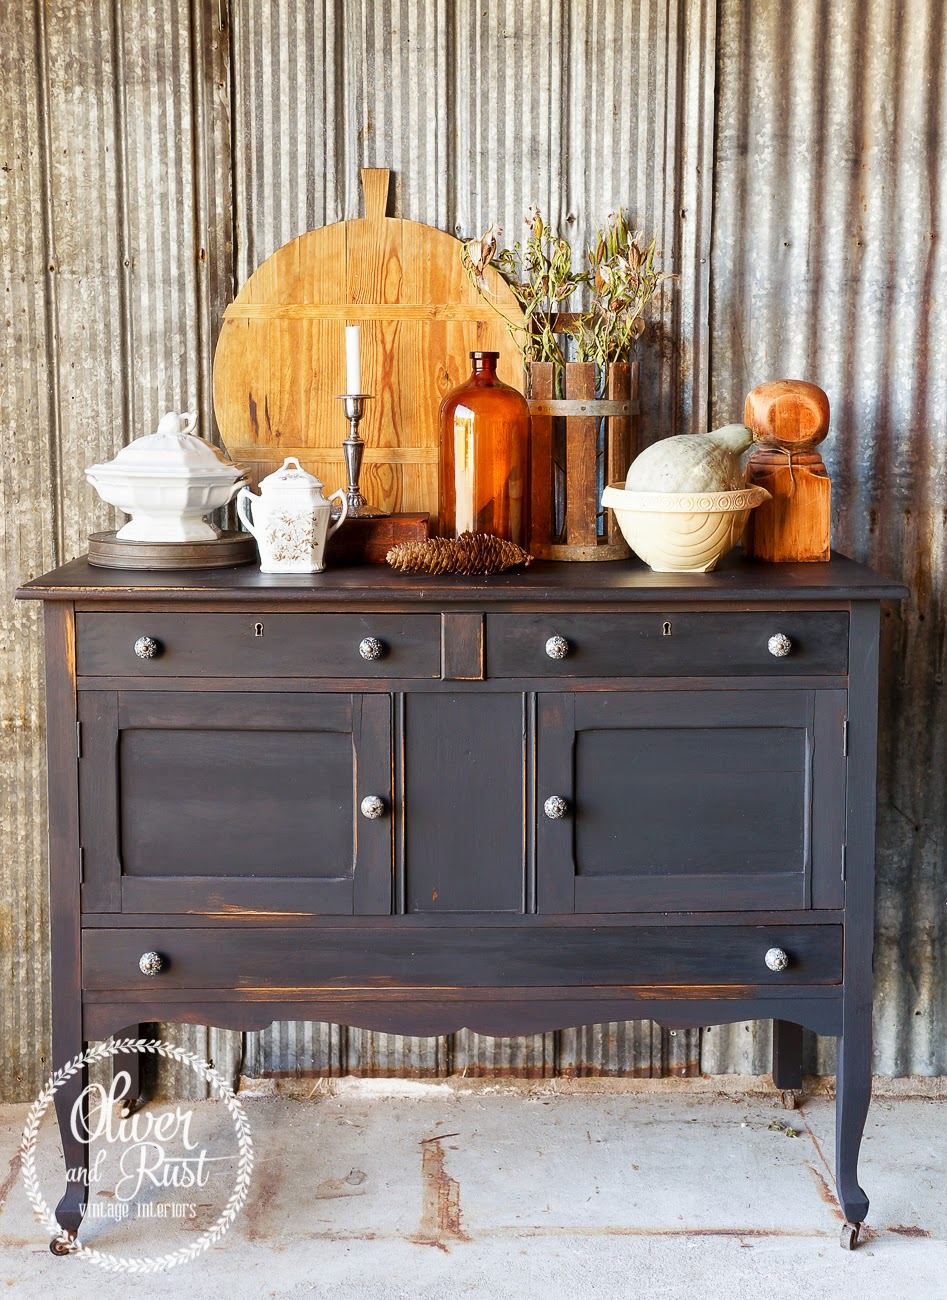 Beautifully painted black buffet from Oliver & Rust | Friday Favorites at www.andersonandgrant.com